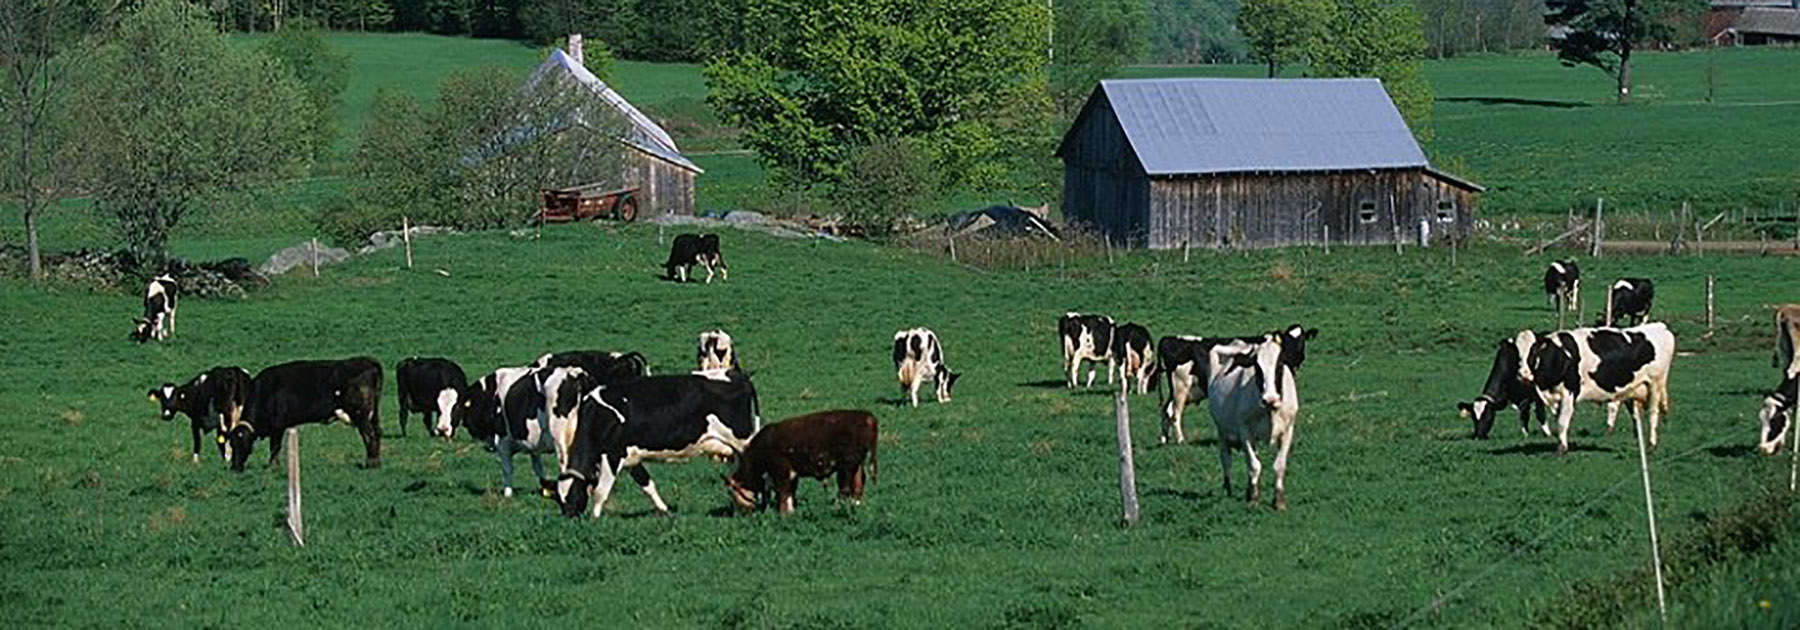 Vermont Farms for Sale | Farms in VT for Sale | CB Bill Beck